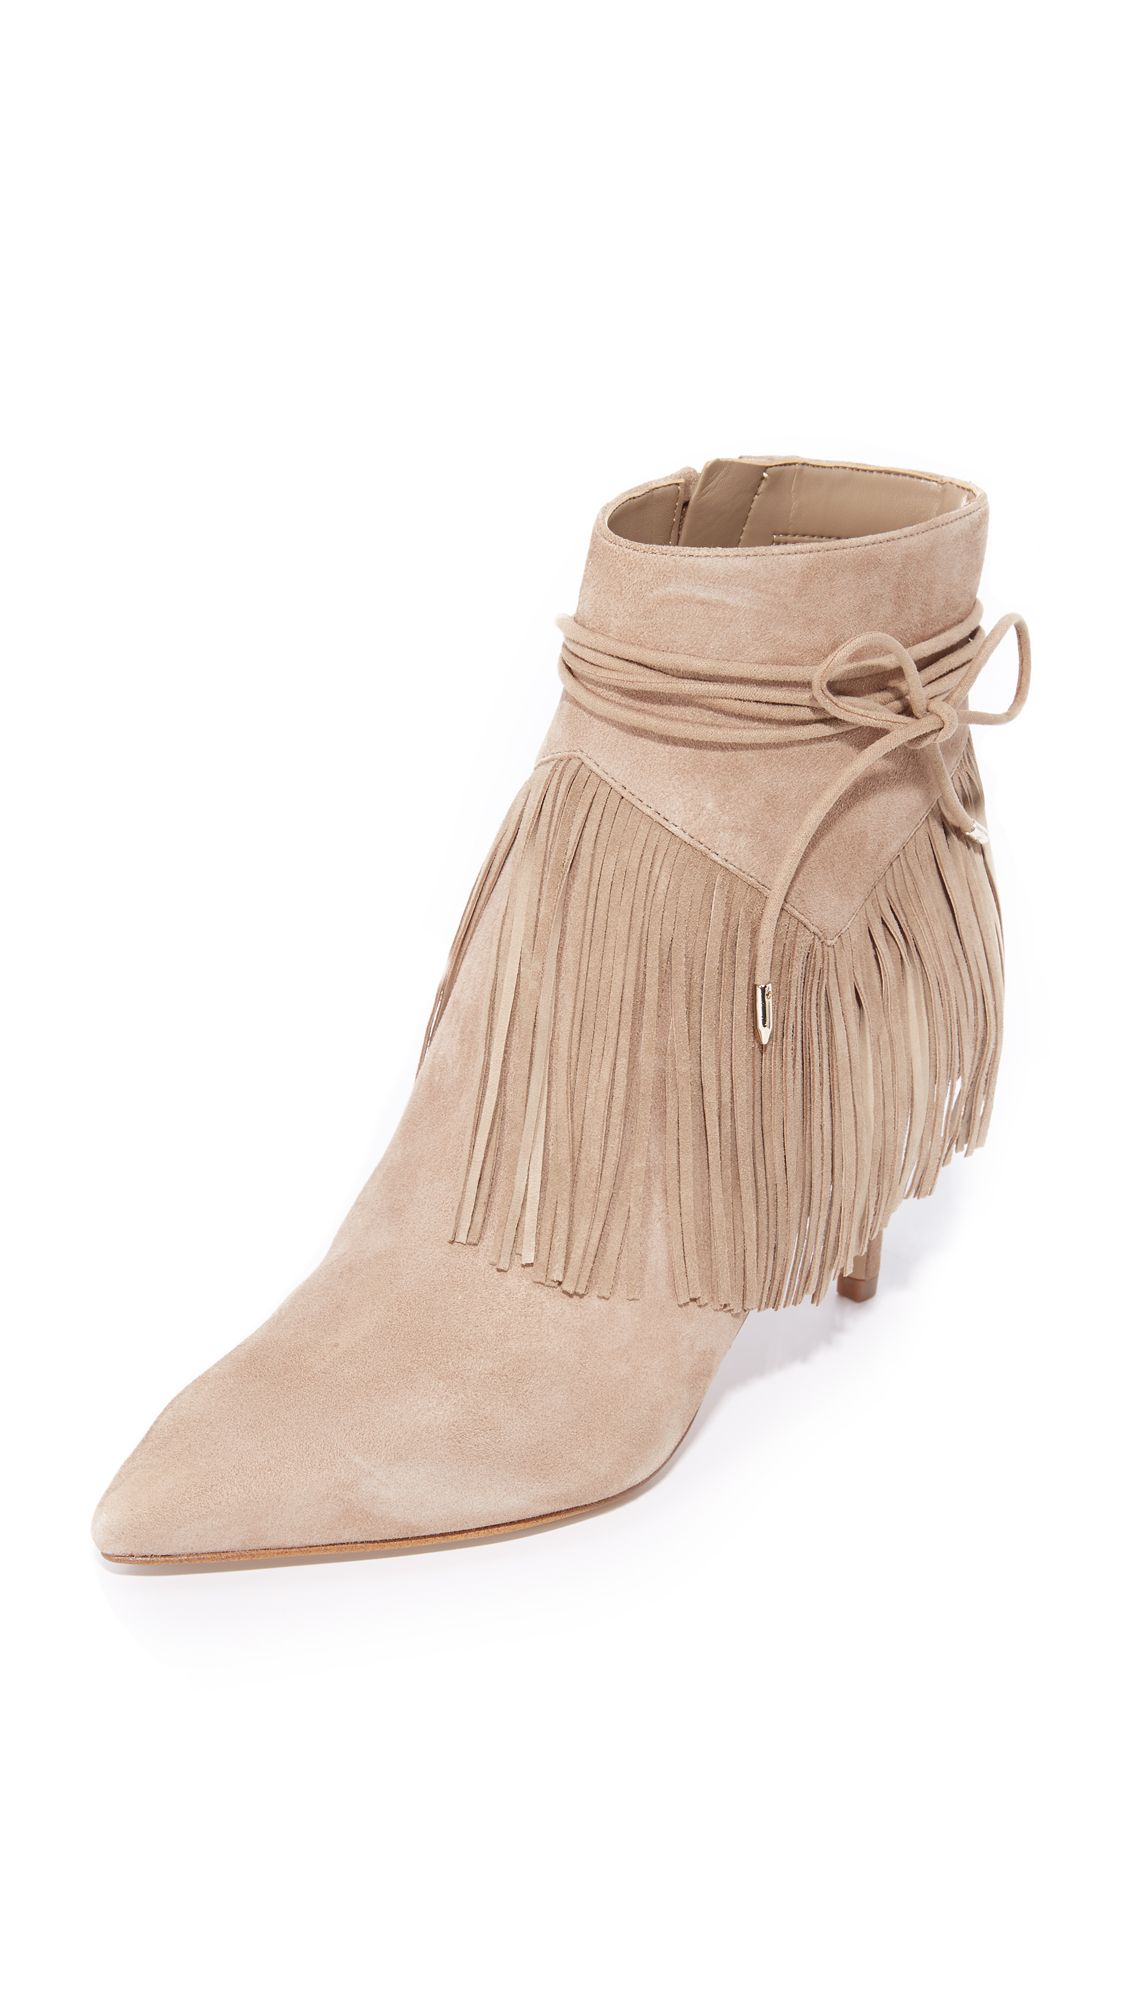 Sam Edelman Marion Fringe Booties - Oatmeal